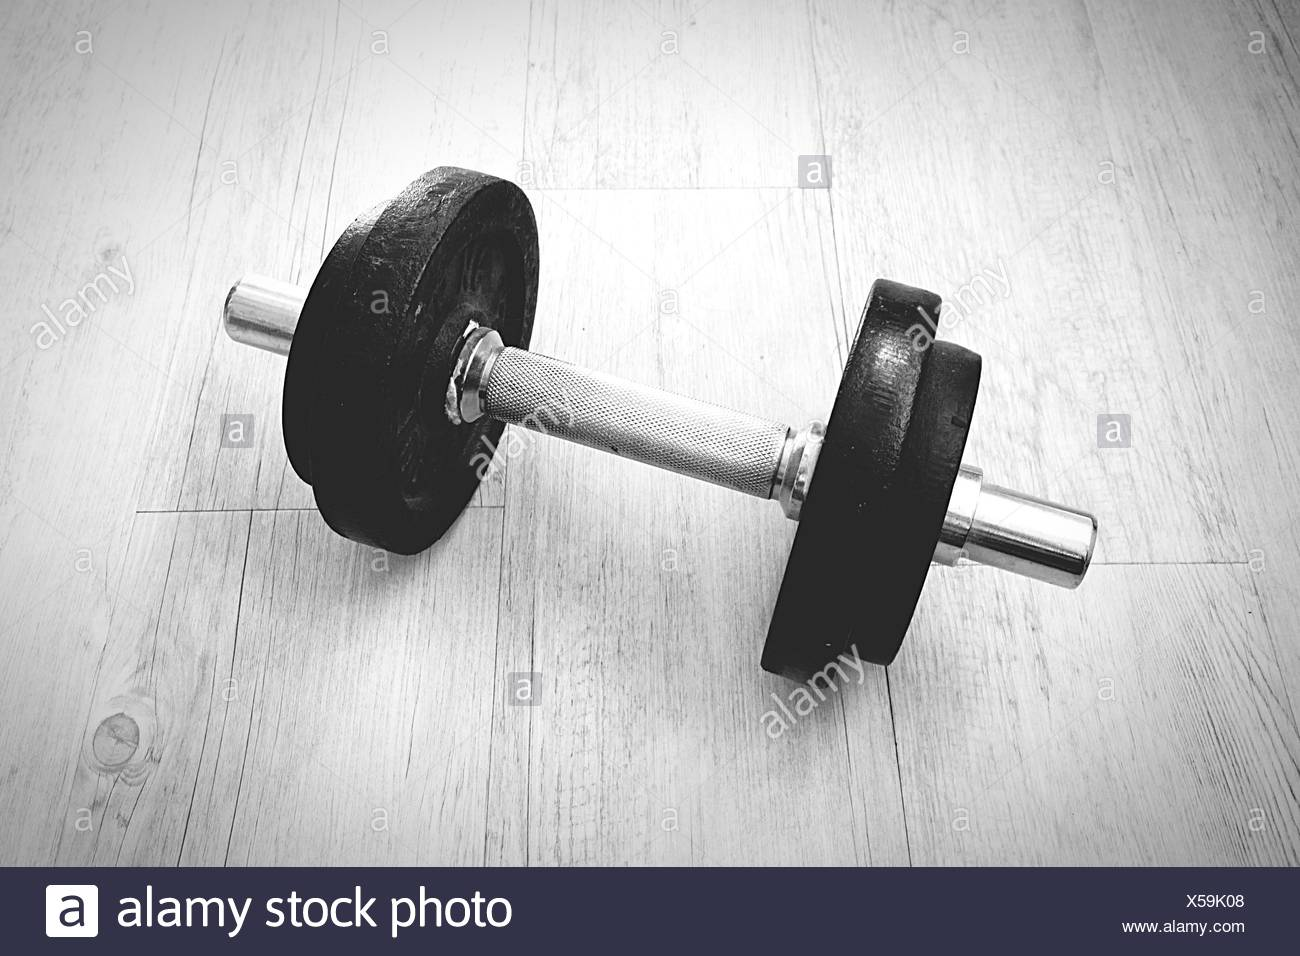 High Angle View Of Dumbbell On Hardwood Floor - Stock Image